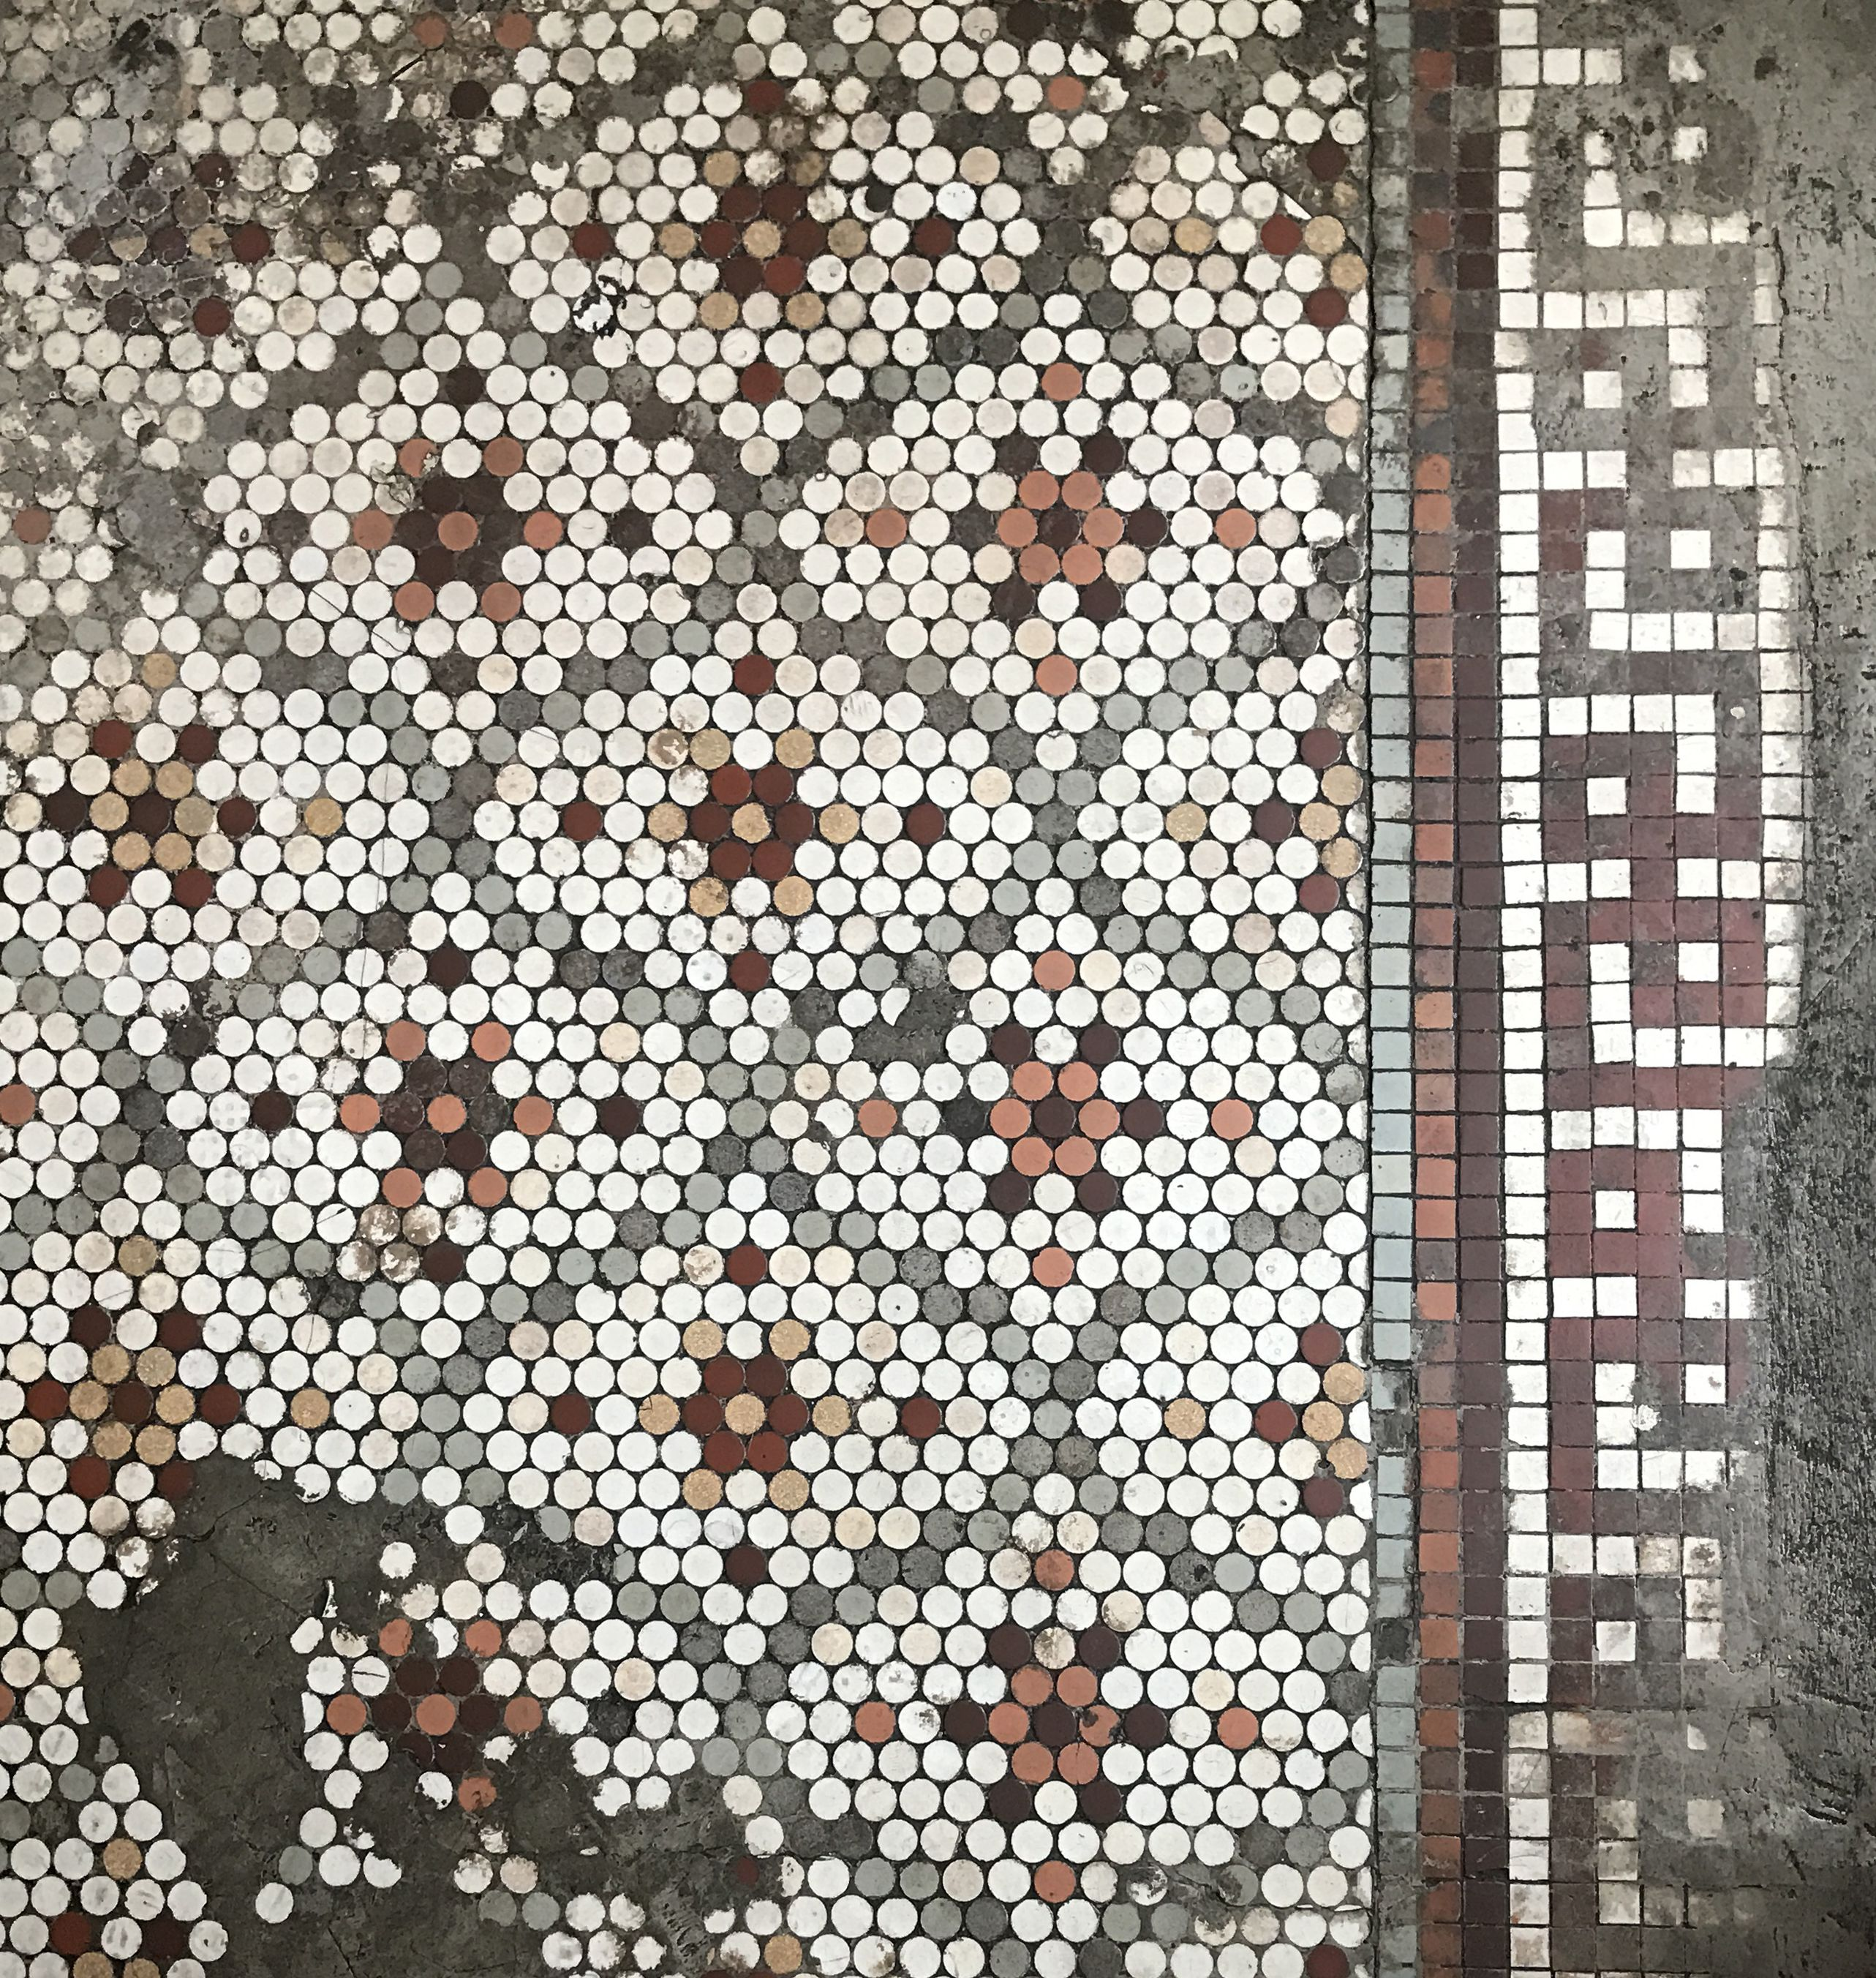 Gorgeous Penny Tile Mosaic Floor From The Early 20th Century